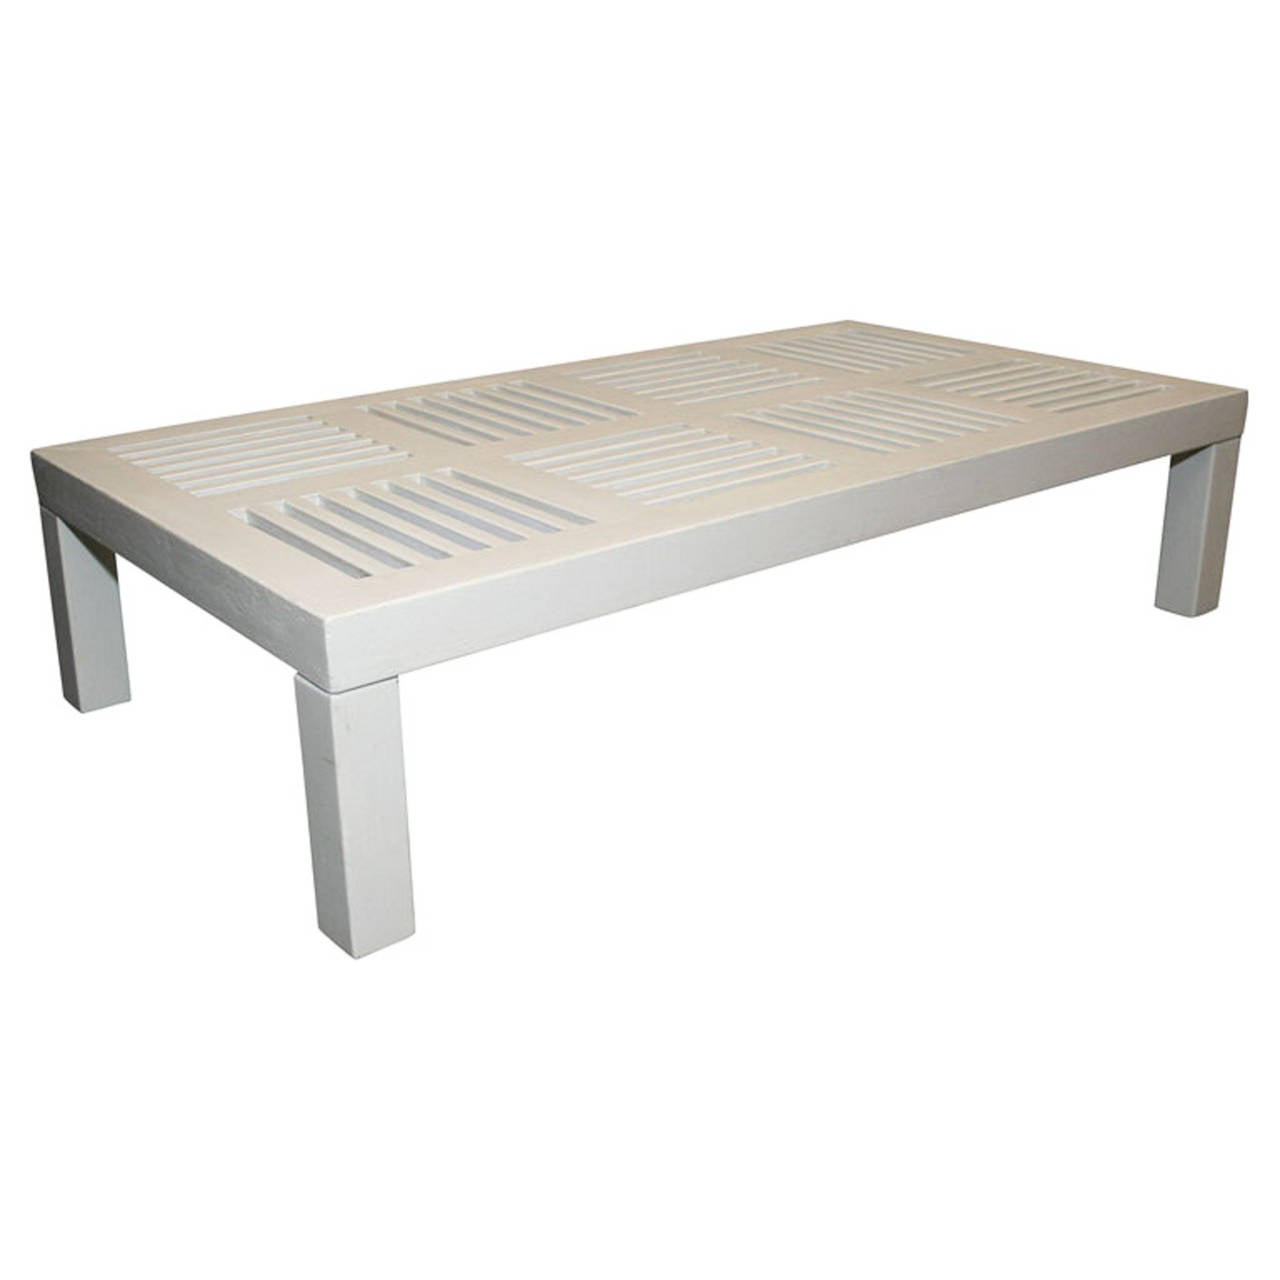 White Painted Rectangular Coffee Table Attrib To Robert Mallet Stevens At 1stdibs